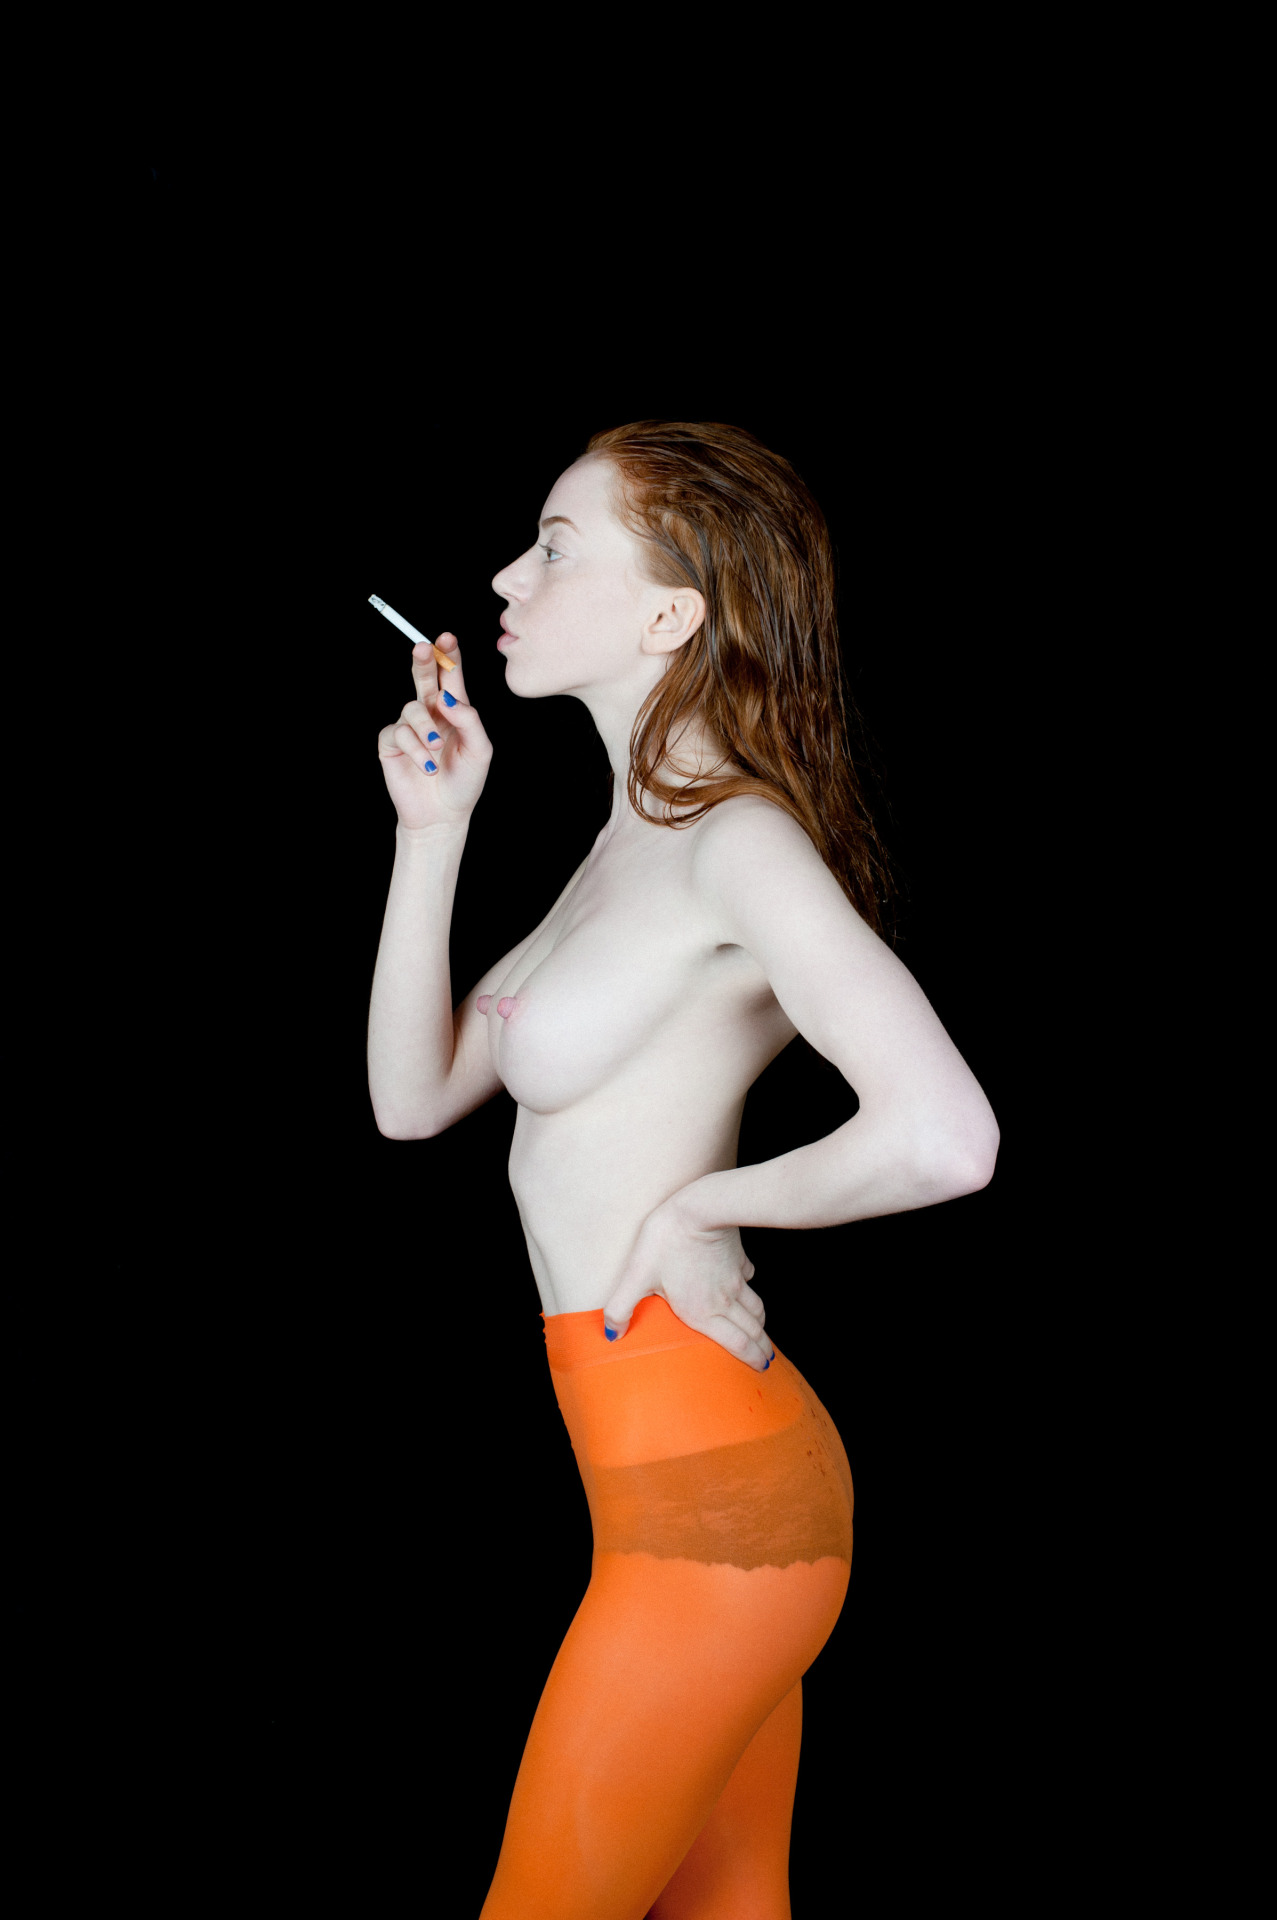 Lily Newmark Topless (8 Photos)